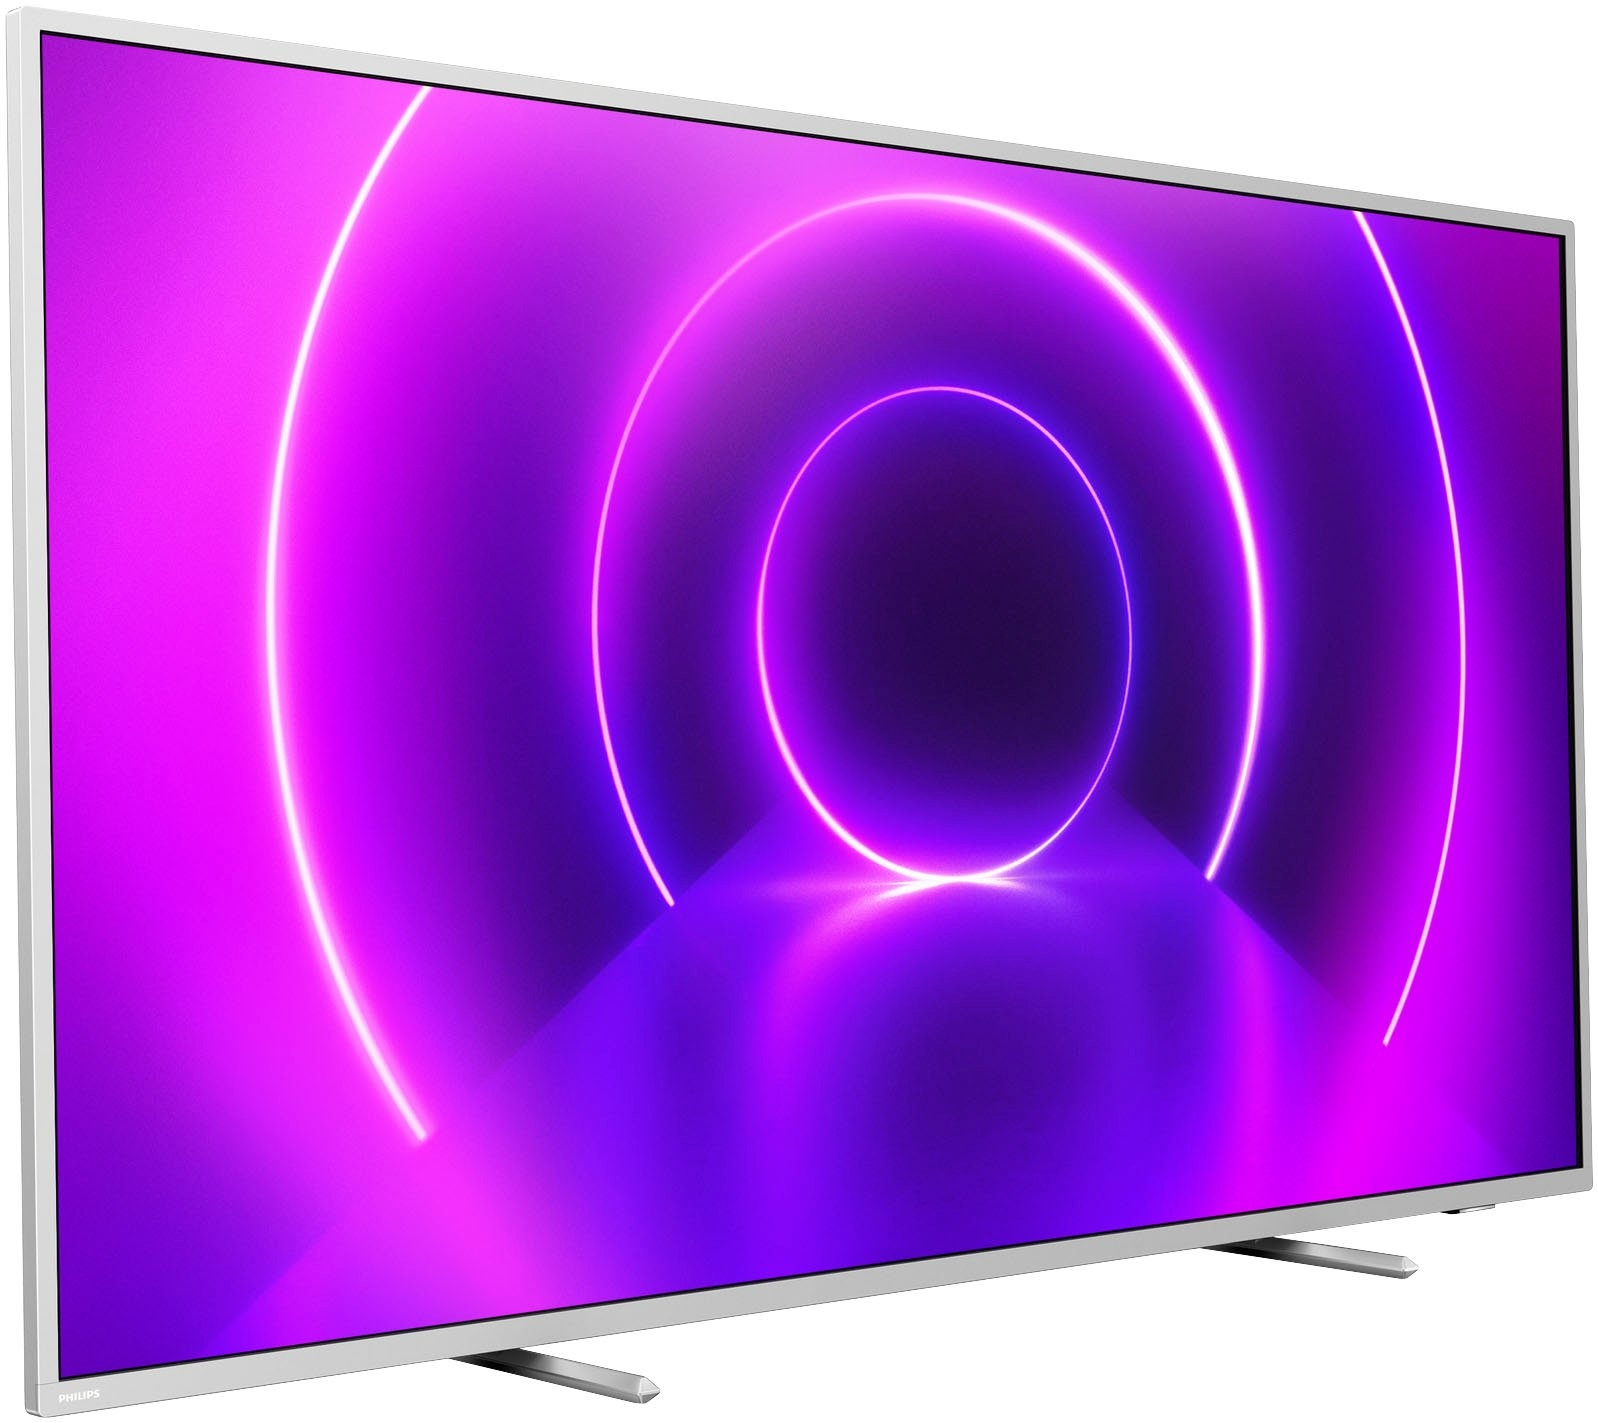 Philips 75PUS8505 LED-tv (189 cm / (75 inch), 4K Ultra HD, Android TV online kopen op otto.nl